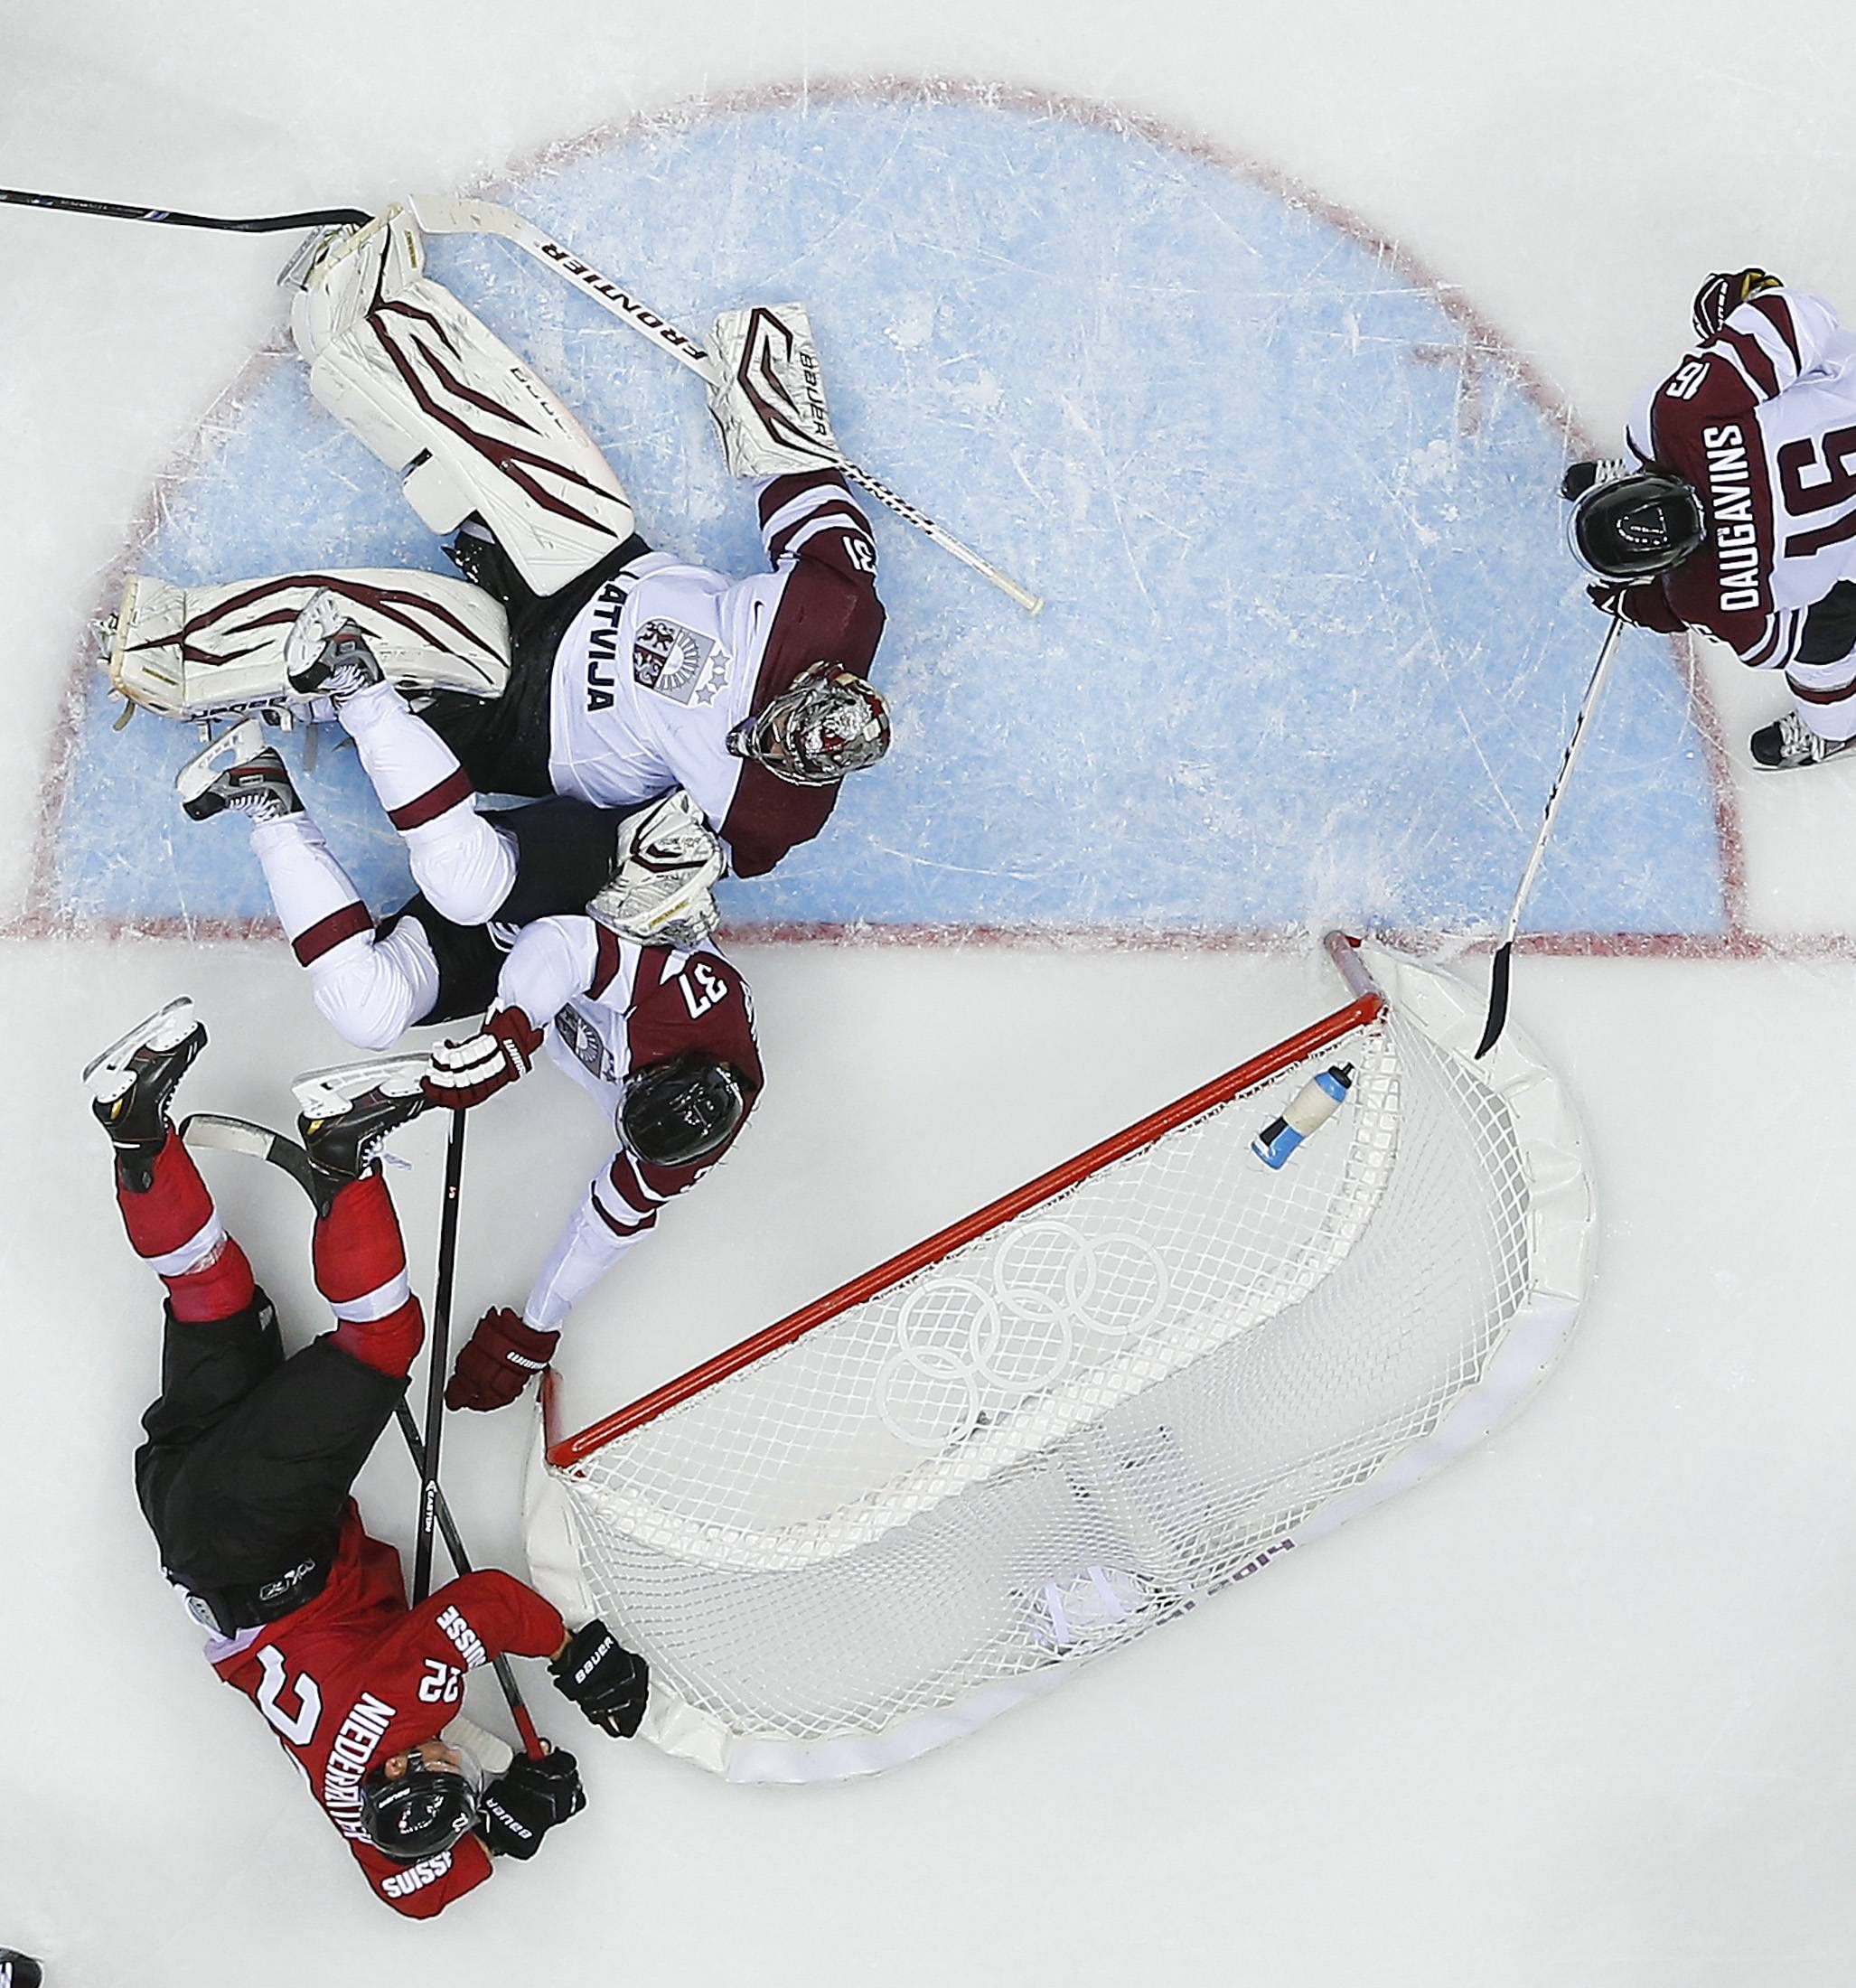 Switzerland forward Nino Niederreiter (22) collides with Latvia defenseman Oskars Bartulis and goaltender Edgars Masalskis in the third period.